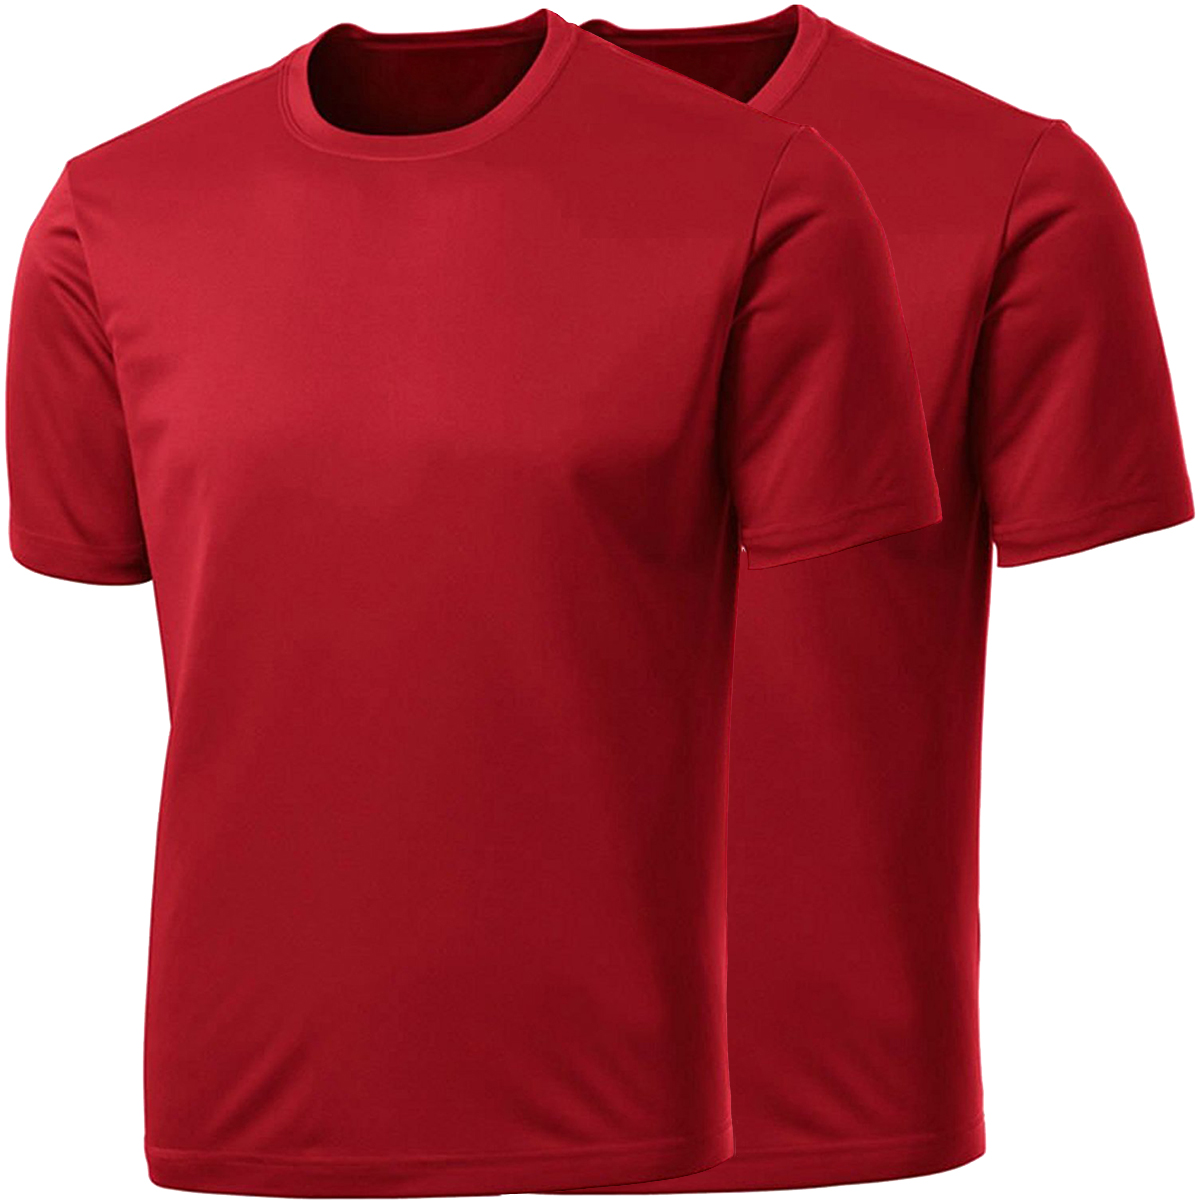 Shop for Moisture Wicking Shirts at REI - FREE SHIPPING With $50 minimum purchase. Top quality, great selection and expert advice you can trust. % Satisfaction Guarantee.